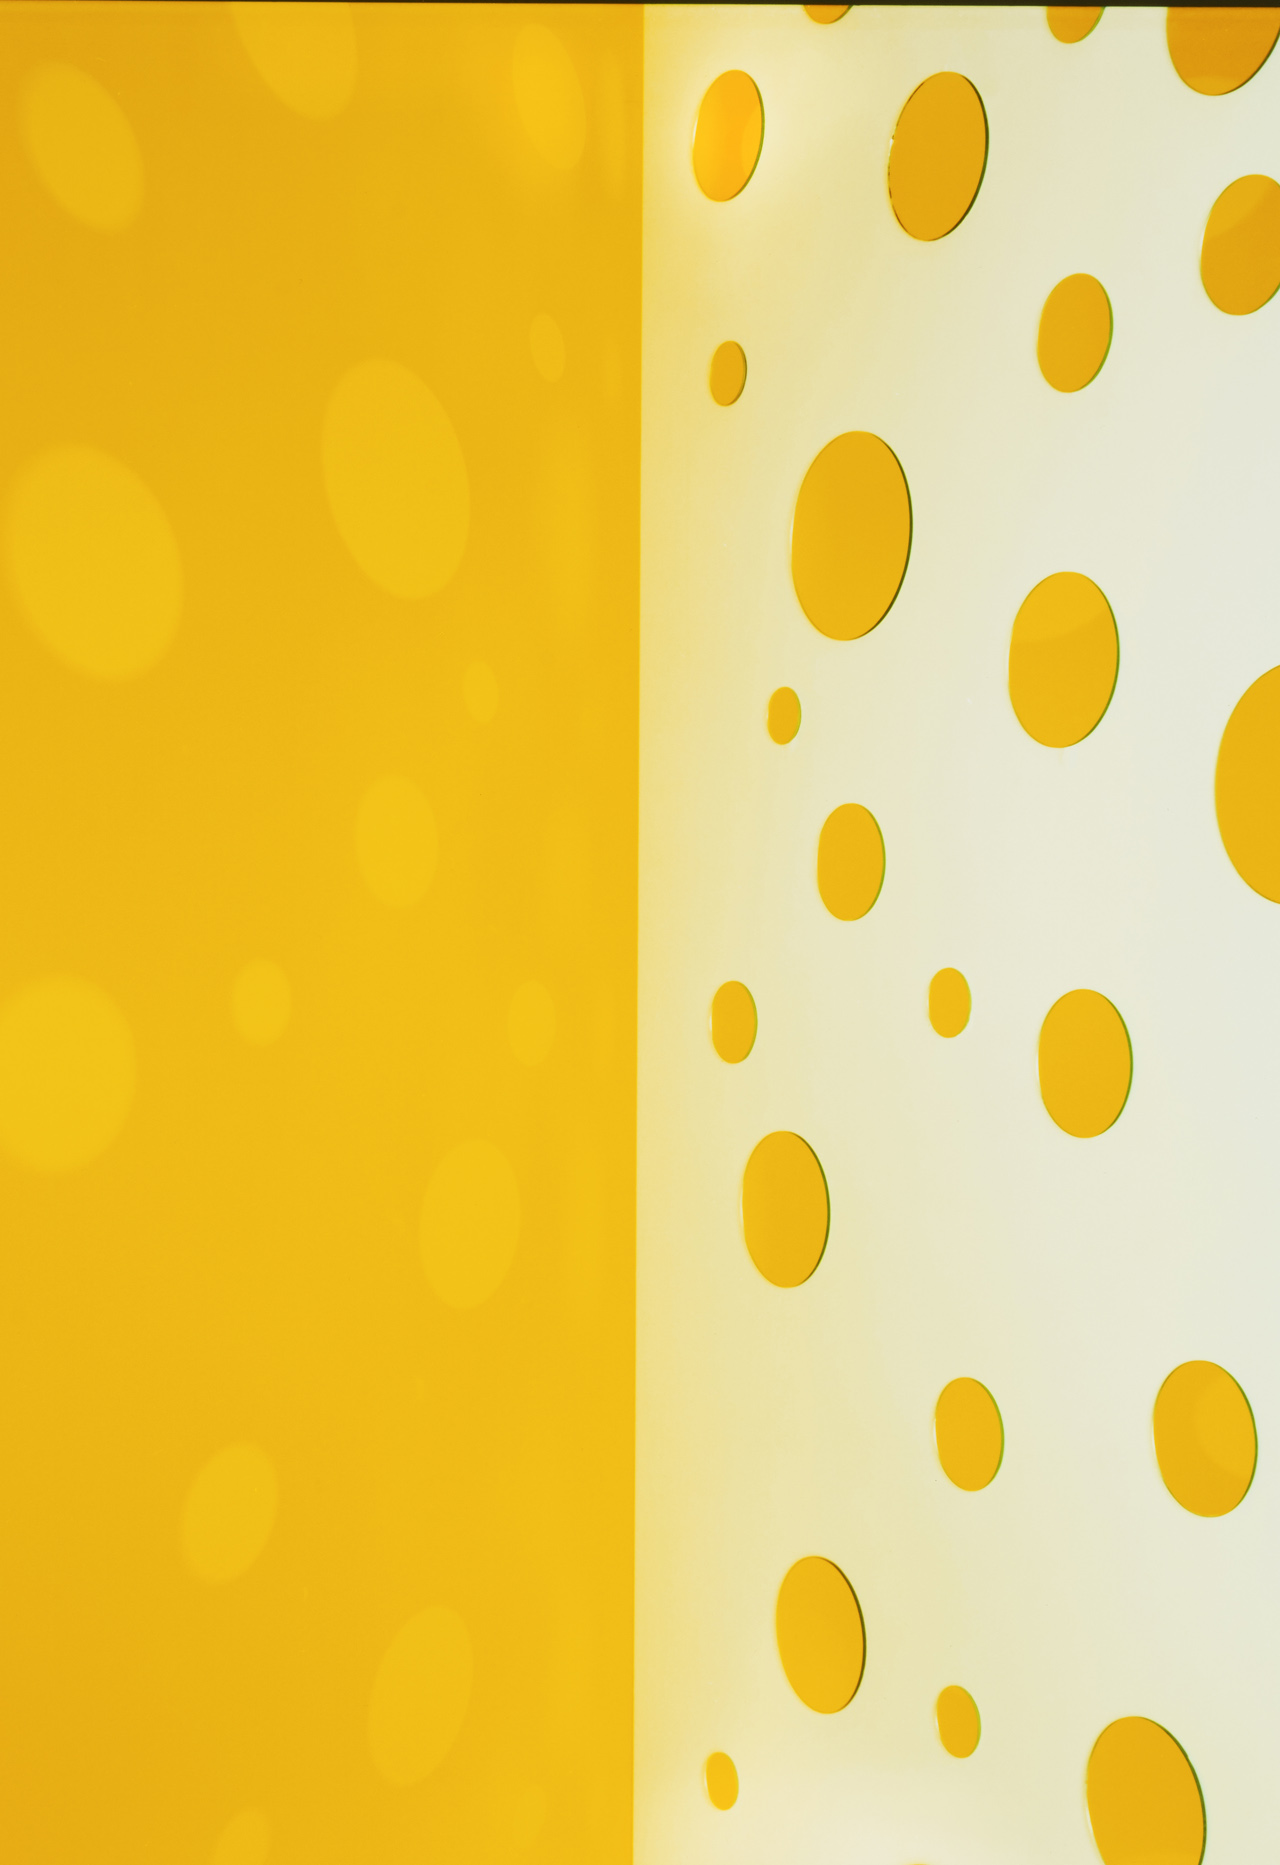 Redgate_Light Throw (Mirrors) Yellow and White), 2018 final crop copy_ARC ONE LR.jpg